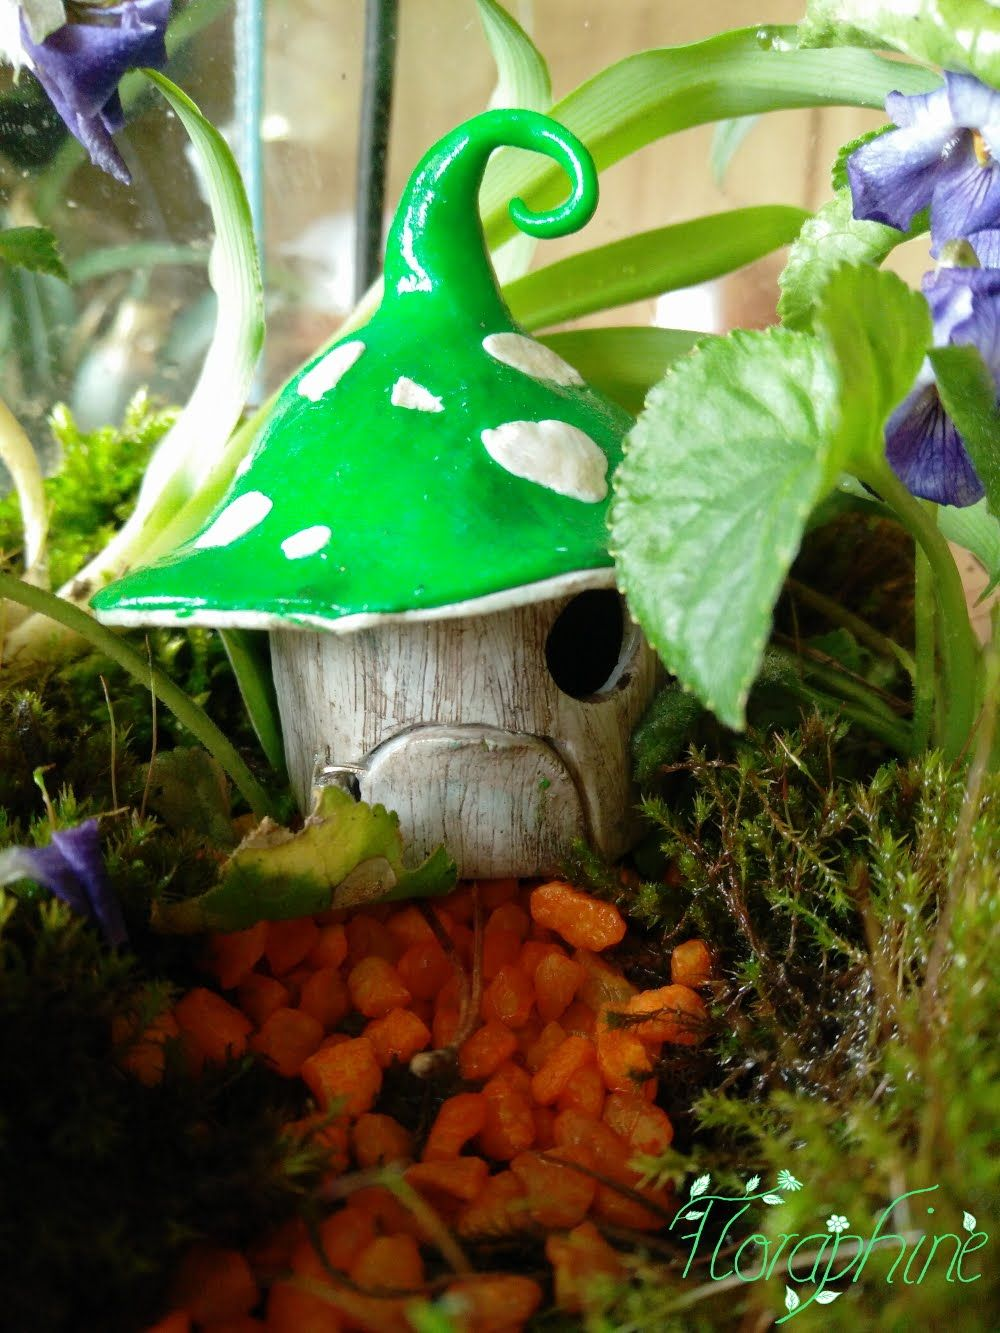 Hey There Today I Want To Show You How To Make A Simple Fairy House From Polymer Clay Materials Polyme Clay Fairy House Fairy Jars Stuffed Mushrooms